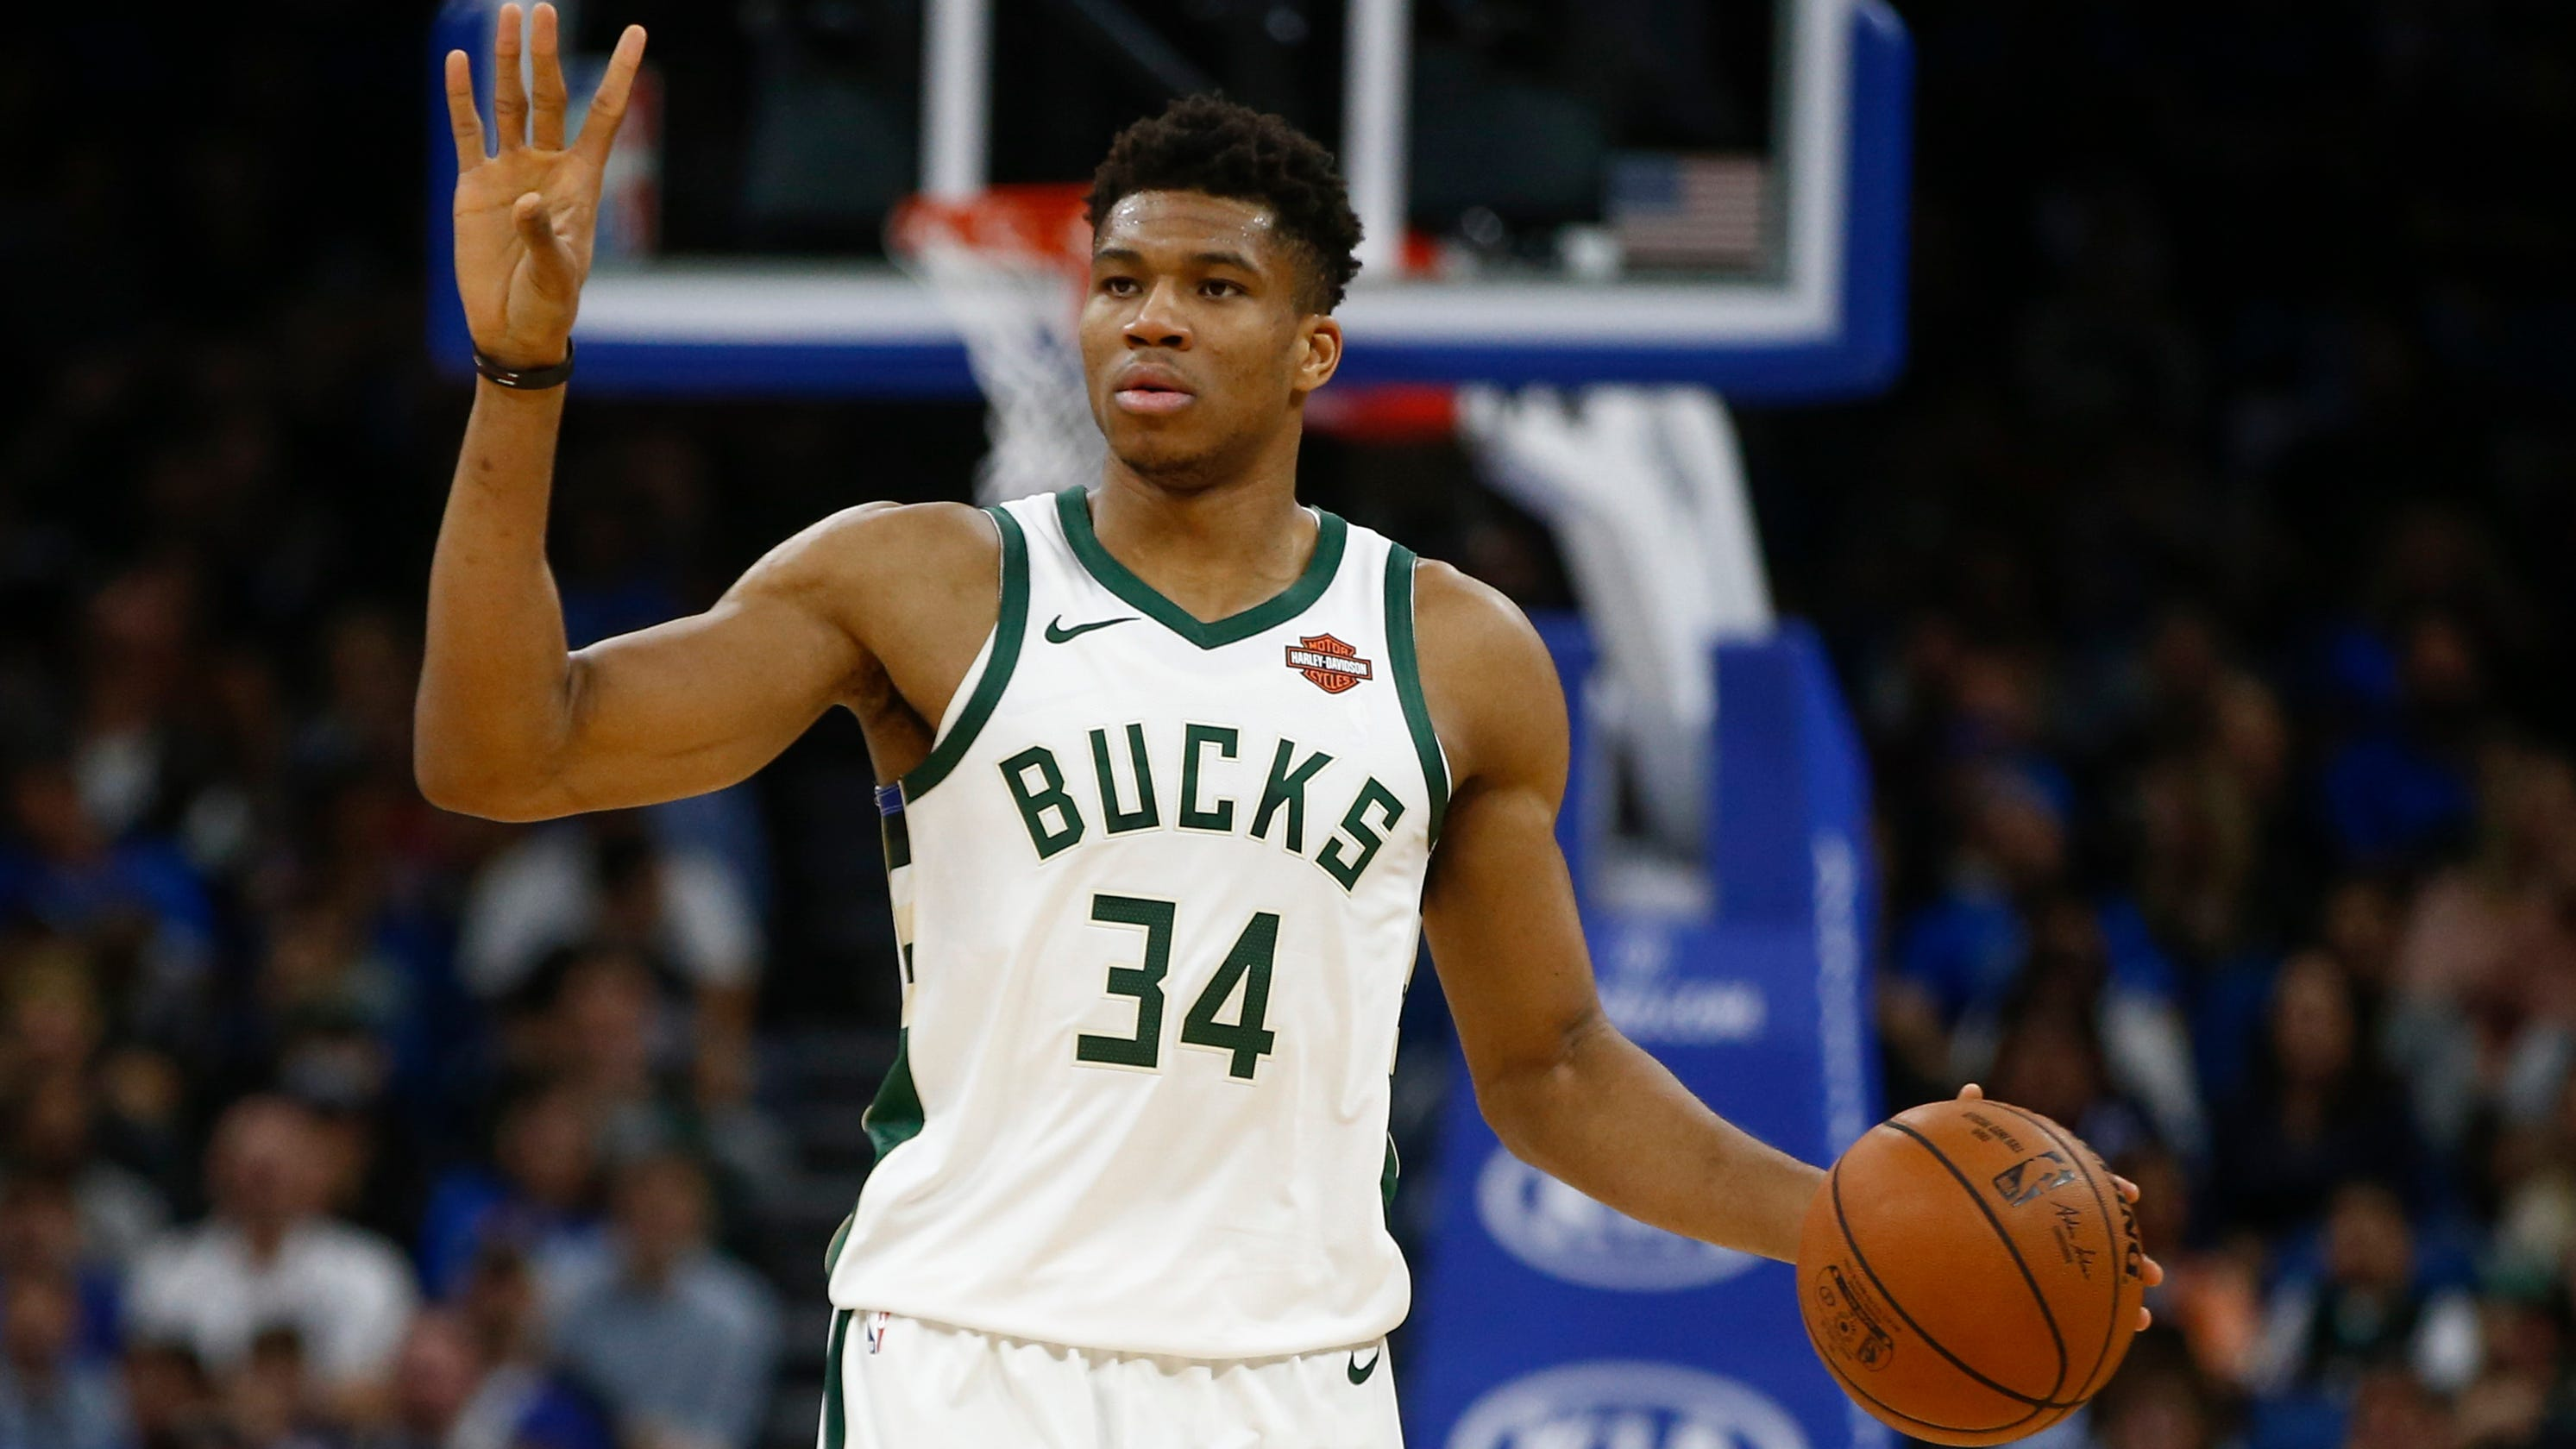 3703b7360 13 hip-hop songs that give Bucks superstar Giannis Antetokounmpo a shout-out